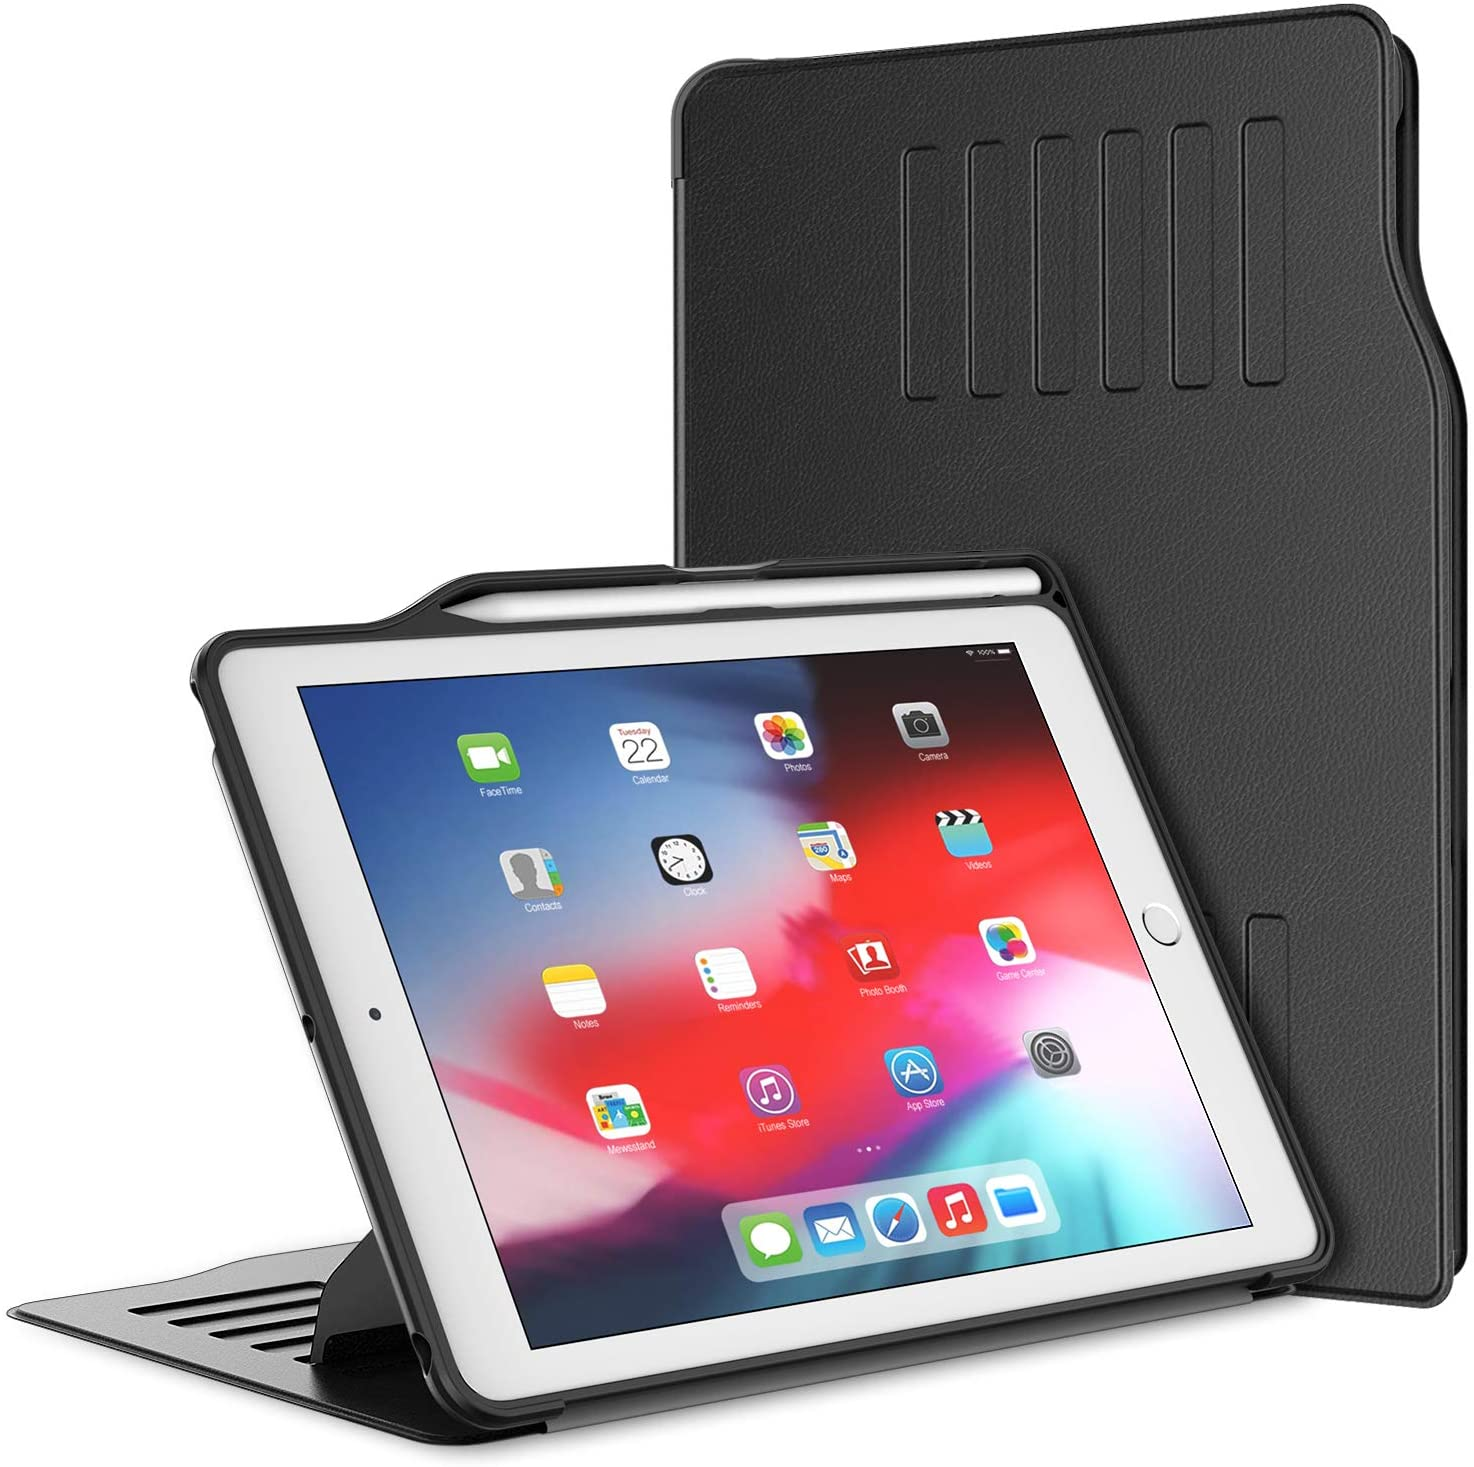 JETech Case for Apple iPad 9.7-Inch (2018/2017 Model, 6th/5th Generation) with Apple Pencil Holder, Highly Protective, Shock Absorption, Multiple Angles, Black